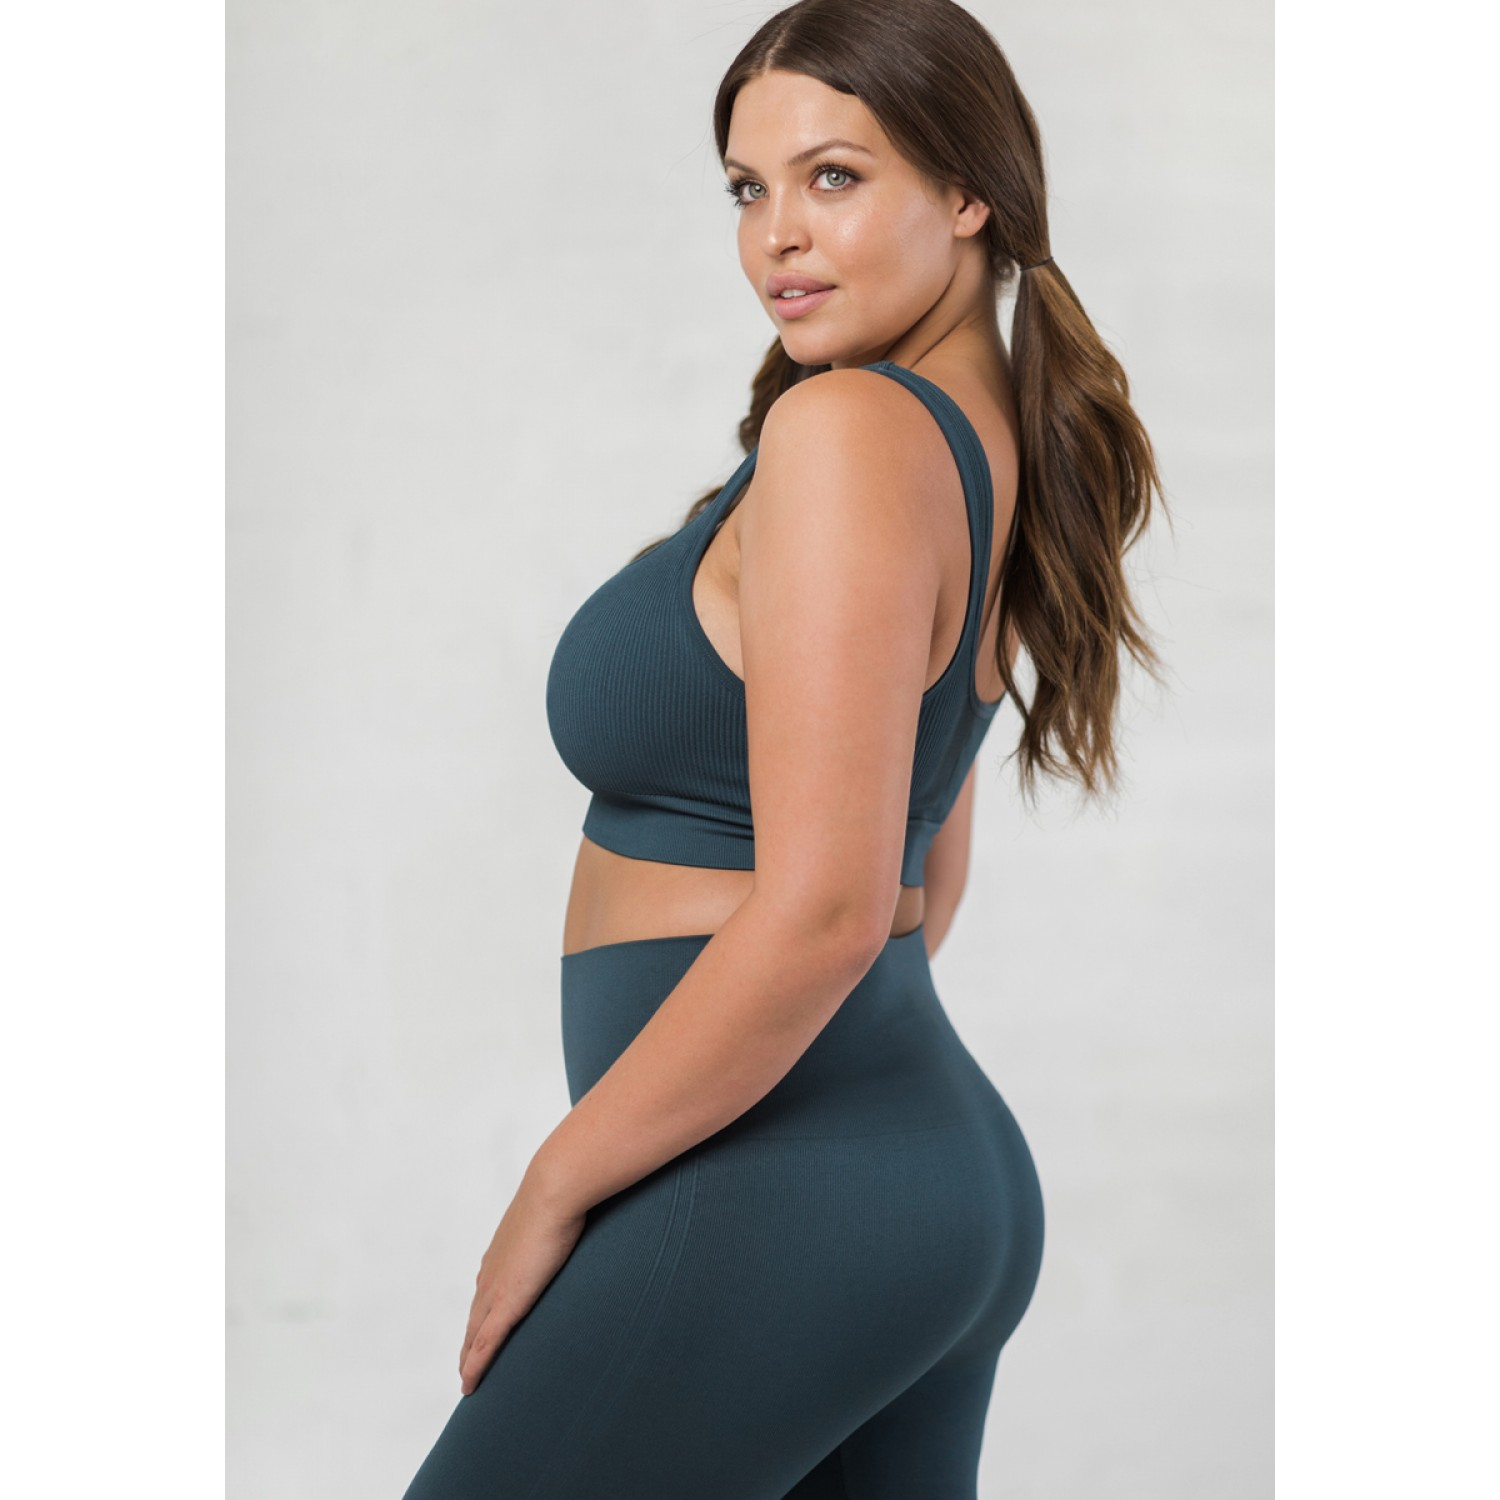 BLANQI® EVERYDAY™ RIBBED SEAMLESS BRALETTE | STORM